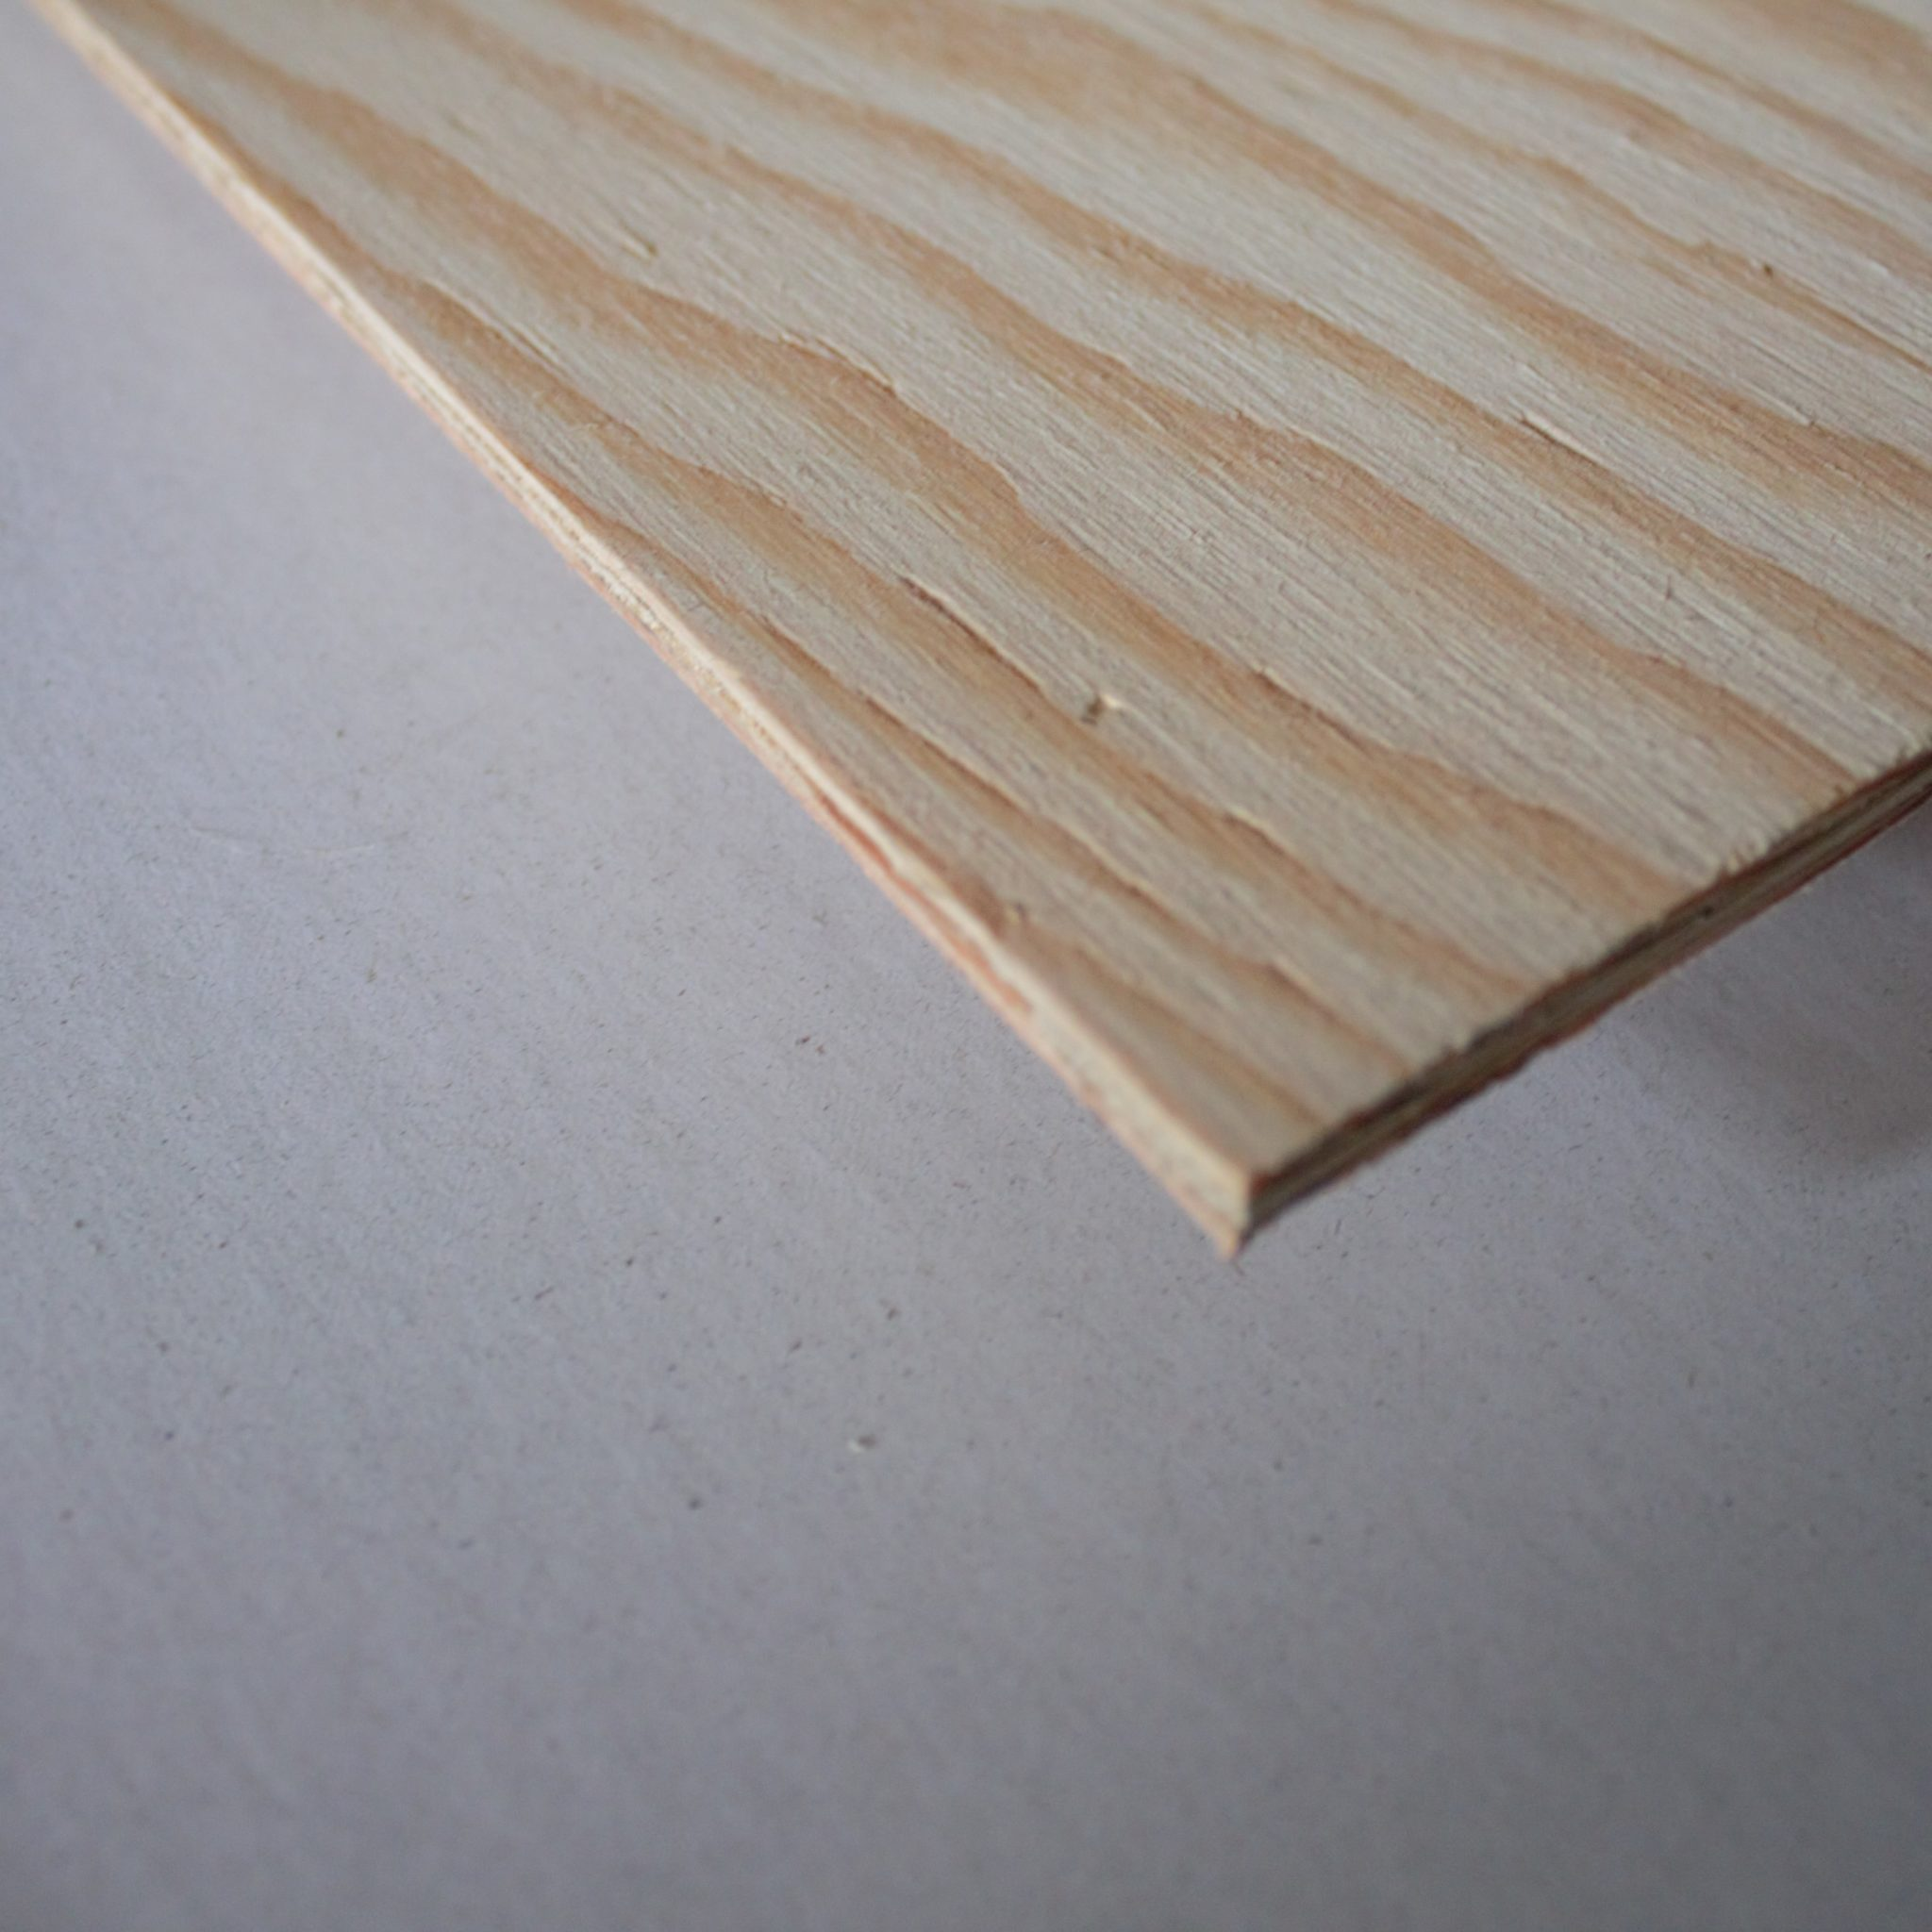 Transit 130 Quot Low Roof Wall Liner Kit 1 4 Quot Plywood Wall